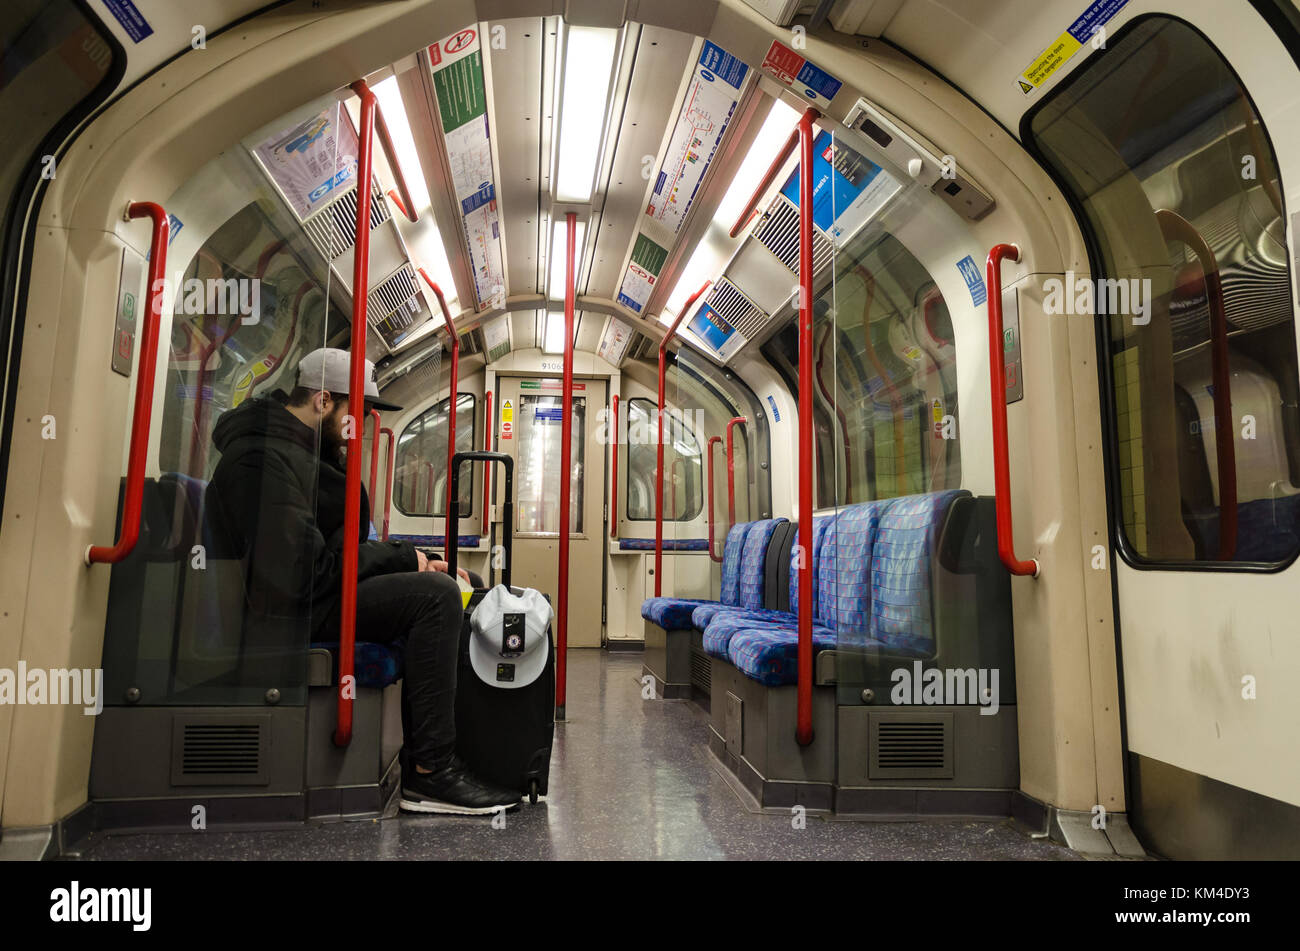 A quiet carriage on the London Underground. - Stock Image